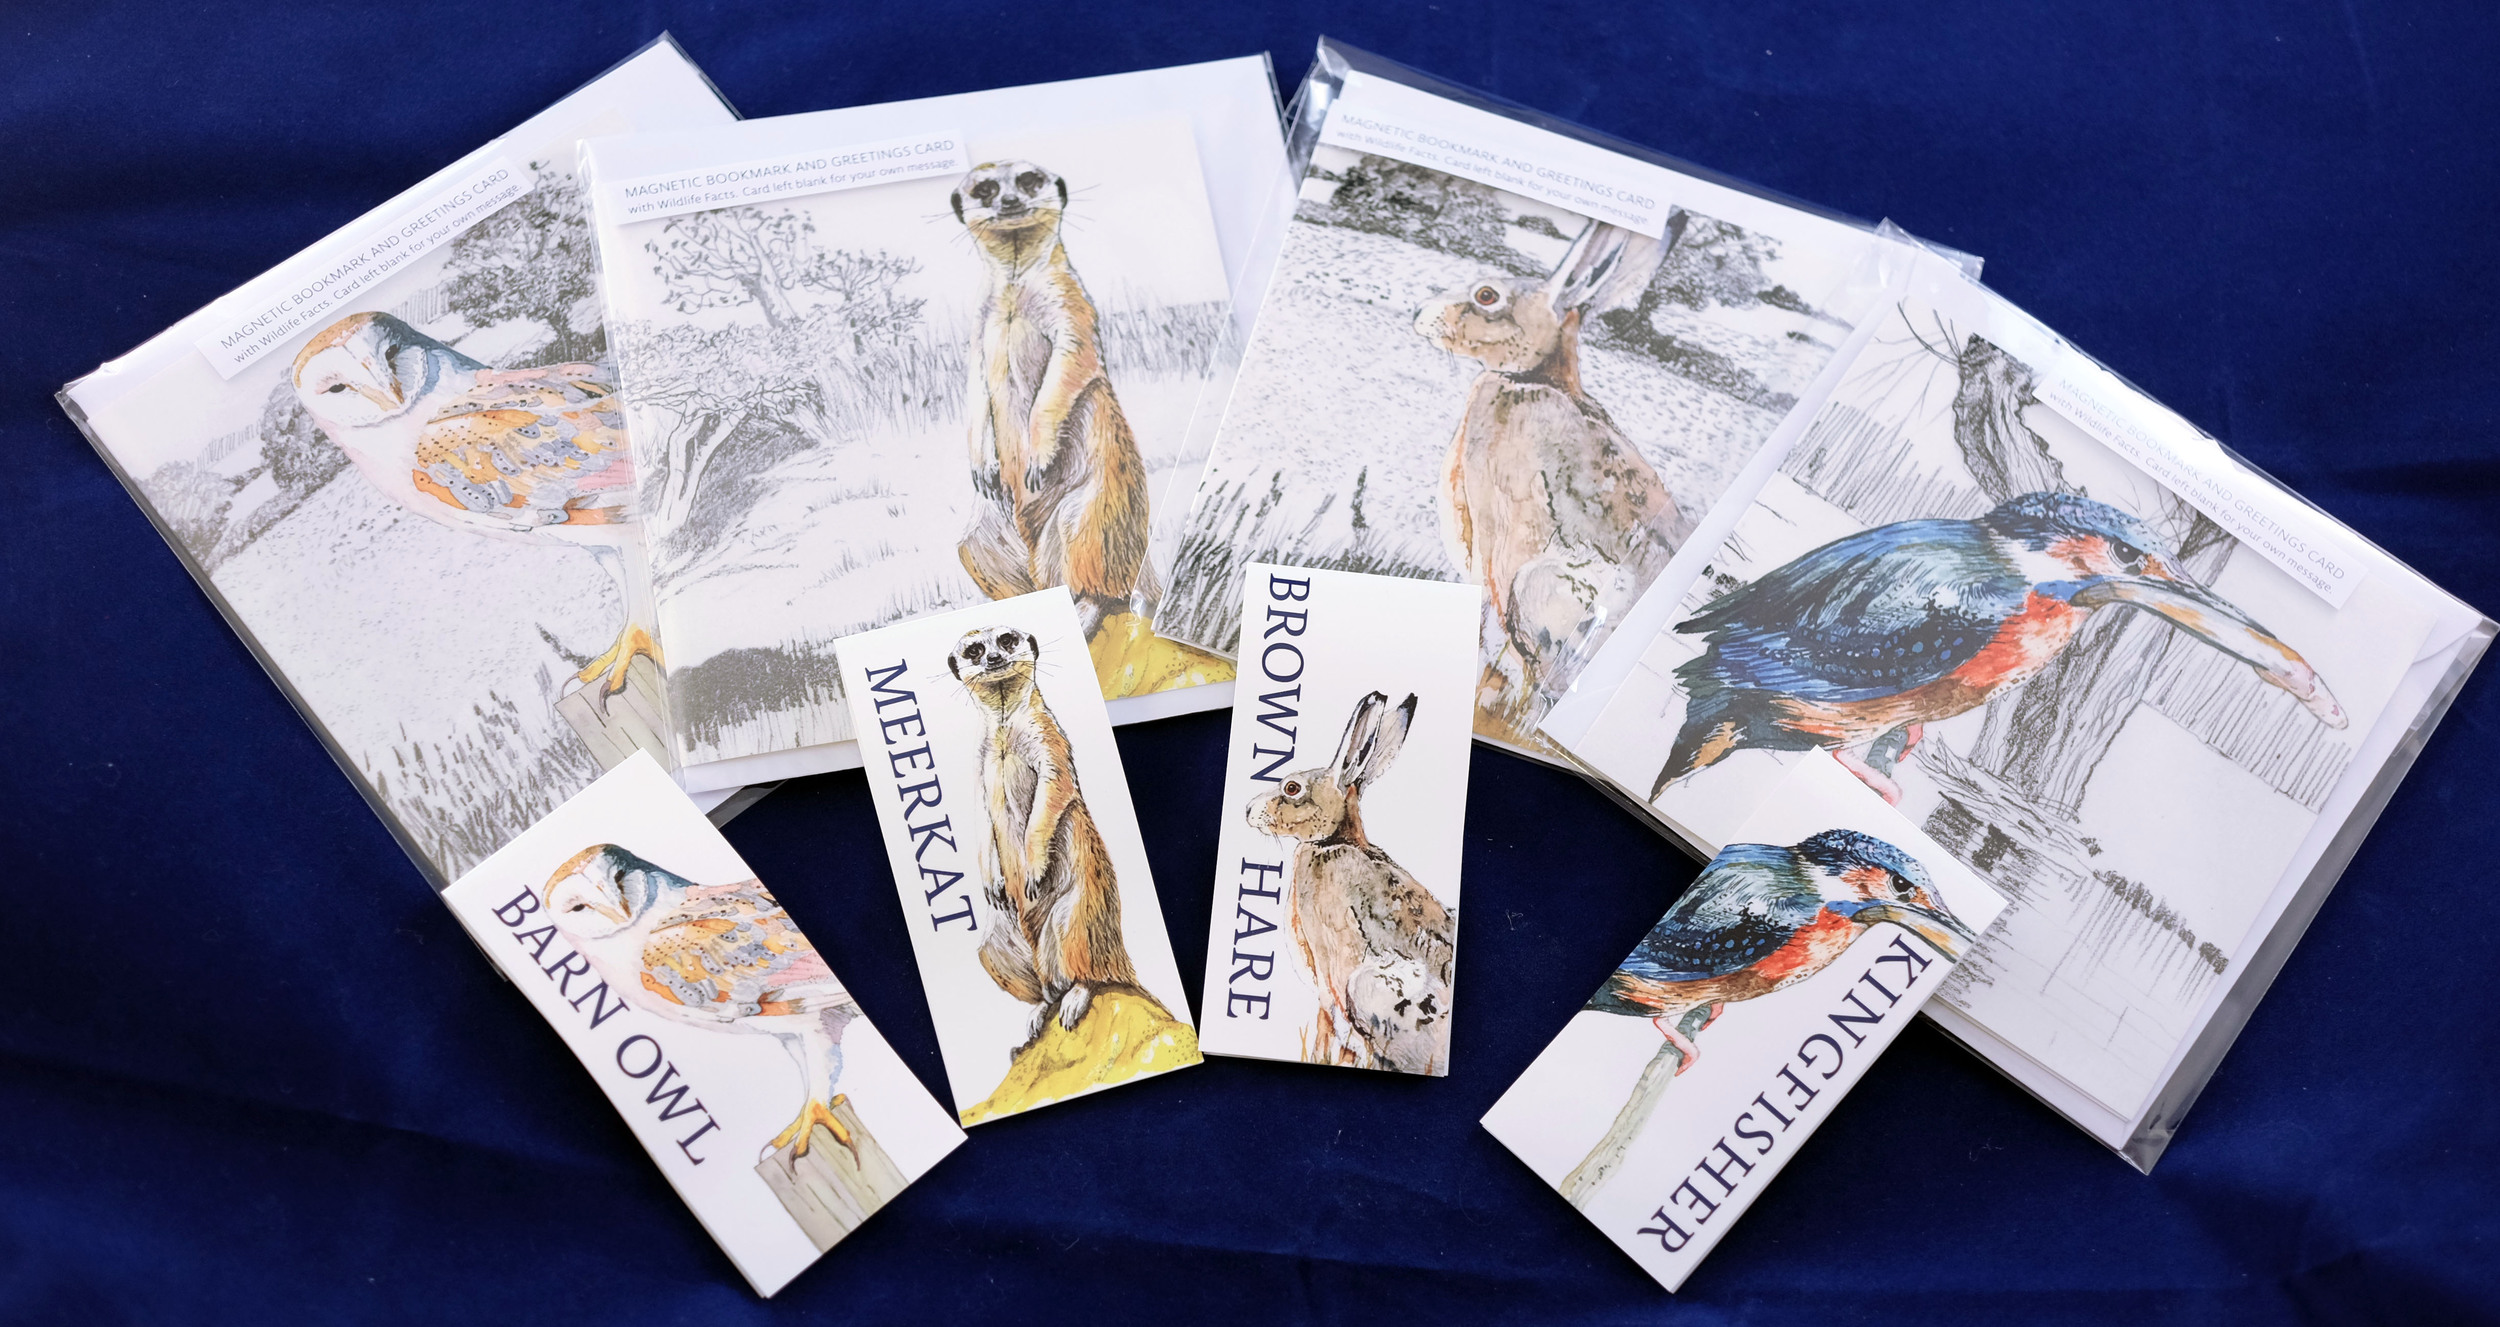 Magnetic Bookmark and Greetings Cards: Barn Owl, Hare, Kingfisher and Meerkat. All available on Etsy just search for ArtfullPuffin. RRP £3.99. Original illustrations by David Evans of Platform One, Monmouth.